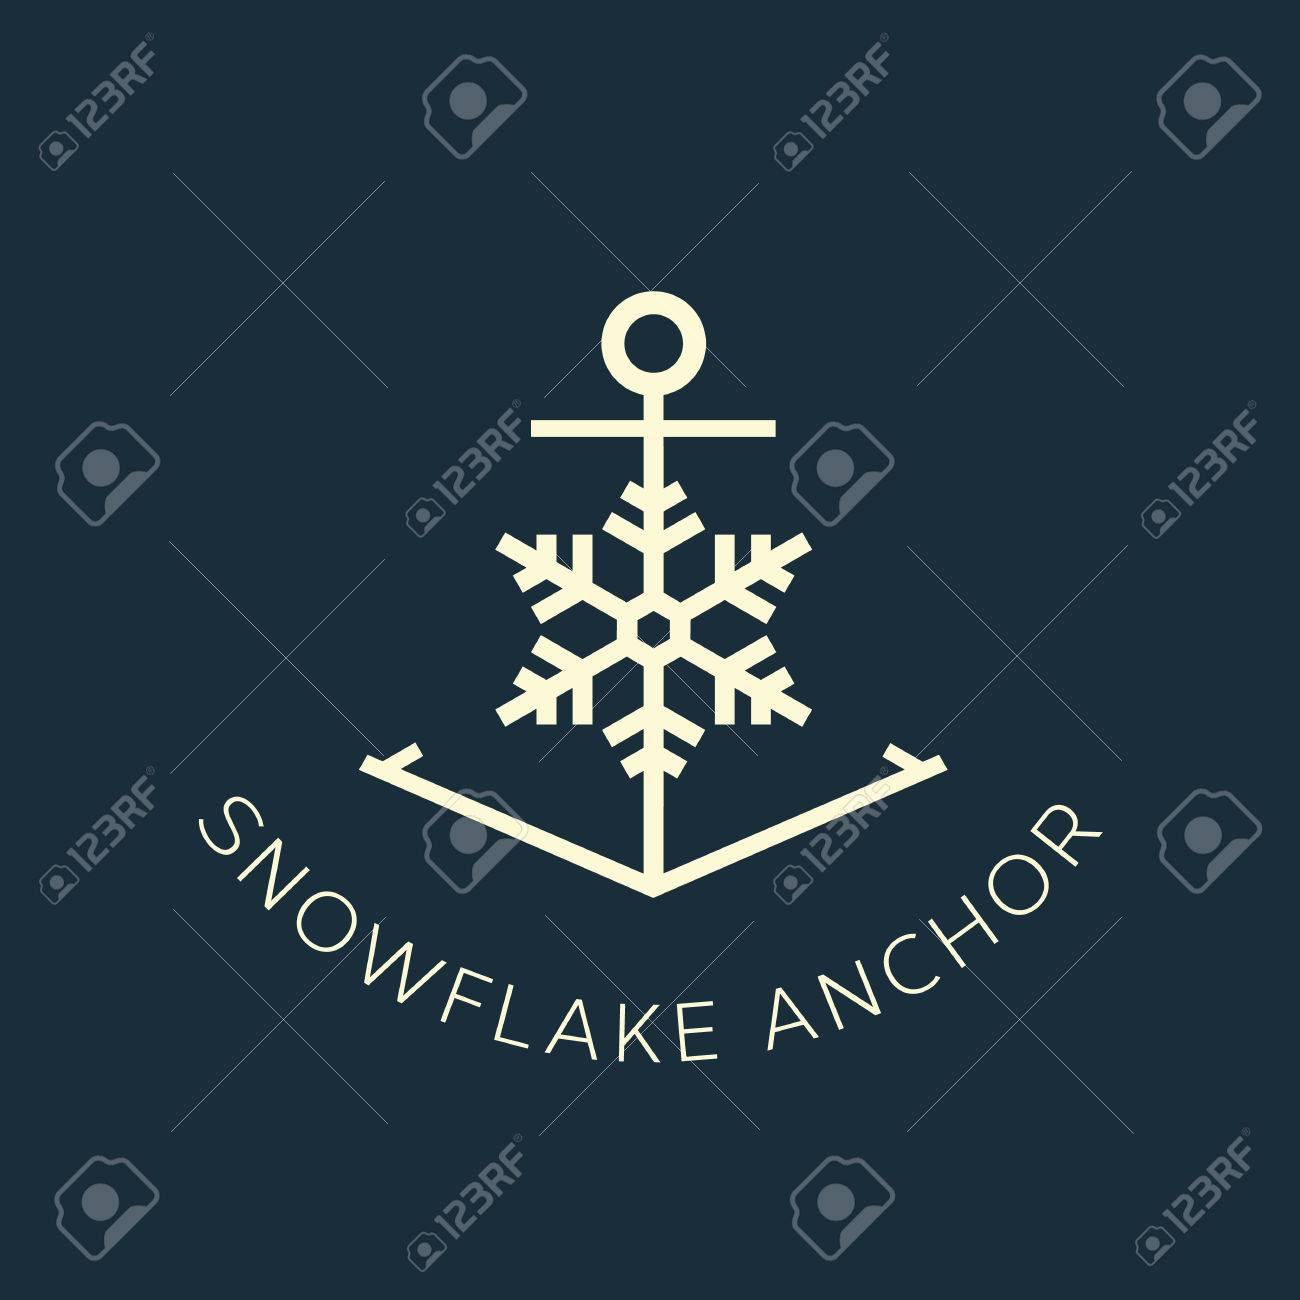 Snowflake anchor concept symbol icon or logo template royalty free snowflake anchor concept symbol icon or logo template stock vector 30973216 biocorpaavc Choice Image